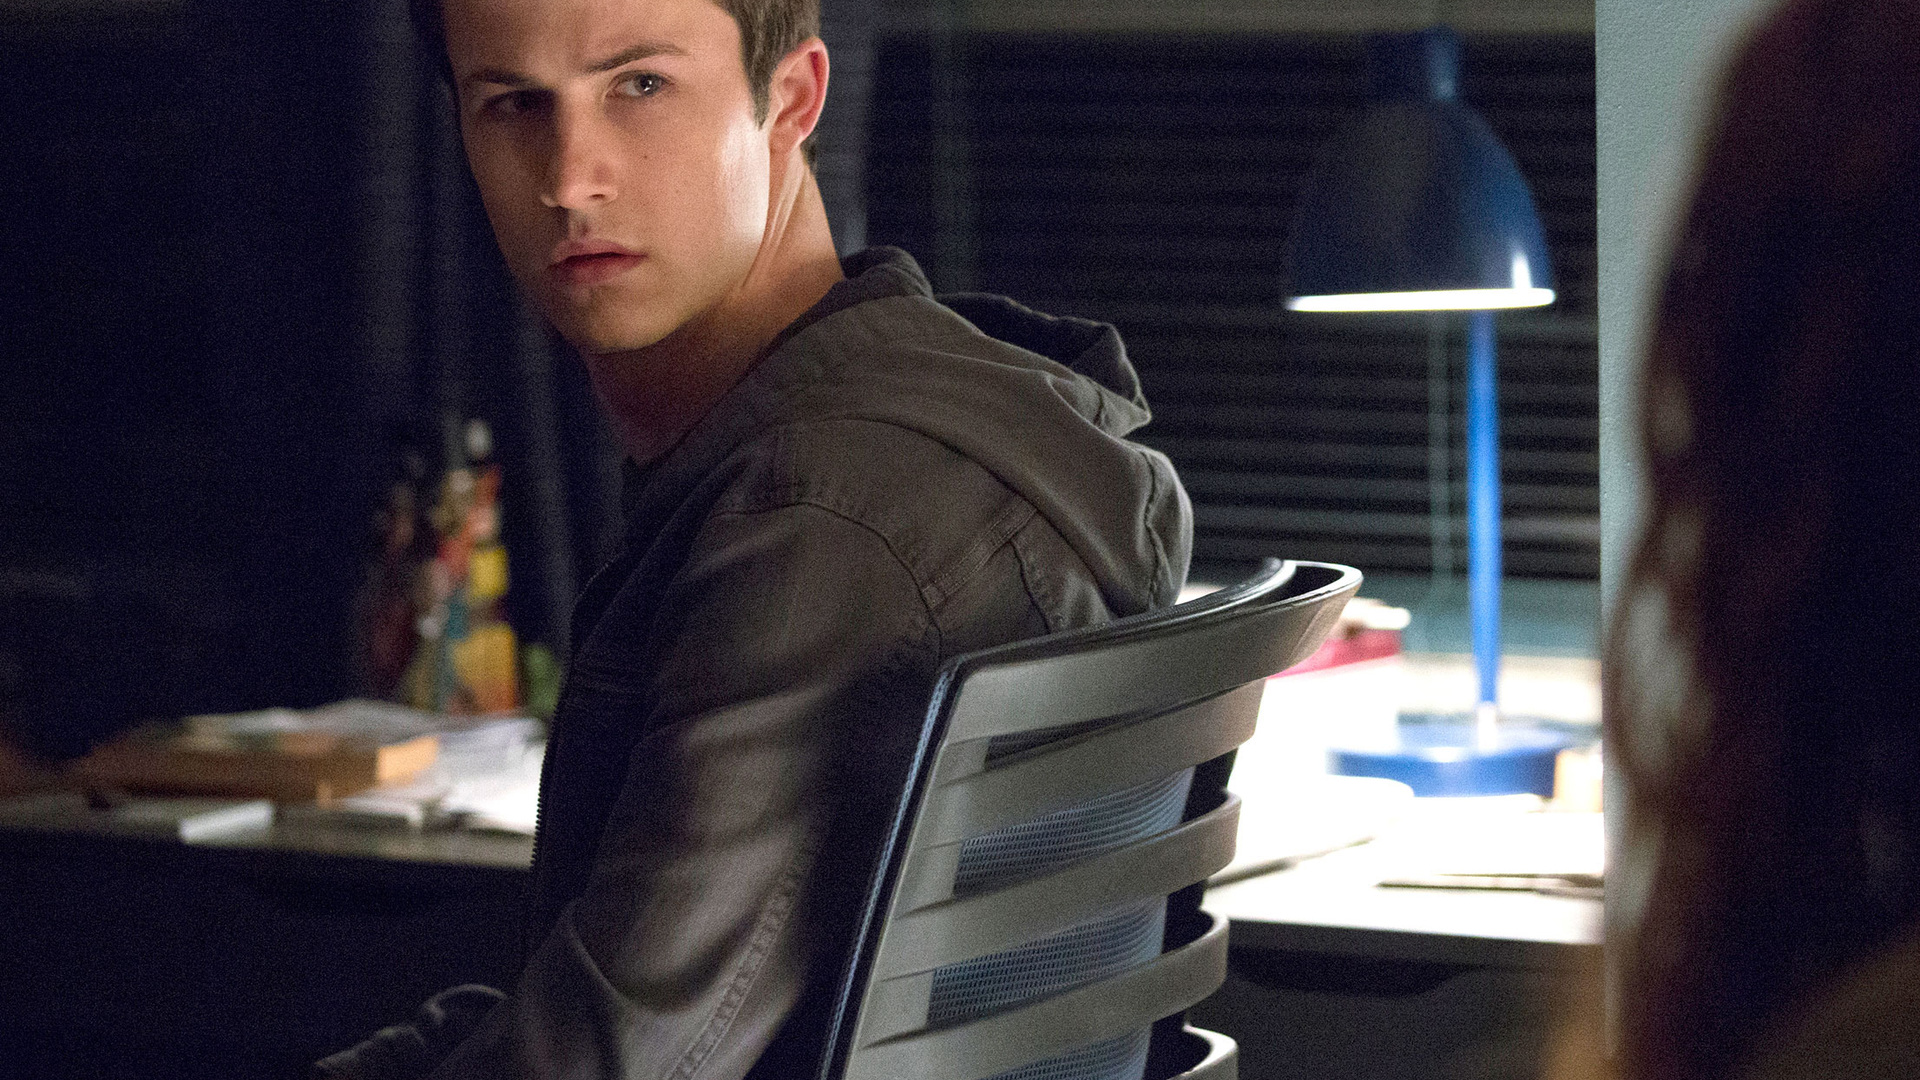 clay-jensen-13-reasons-why-season-2-9e.jpg